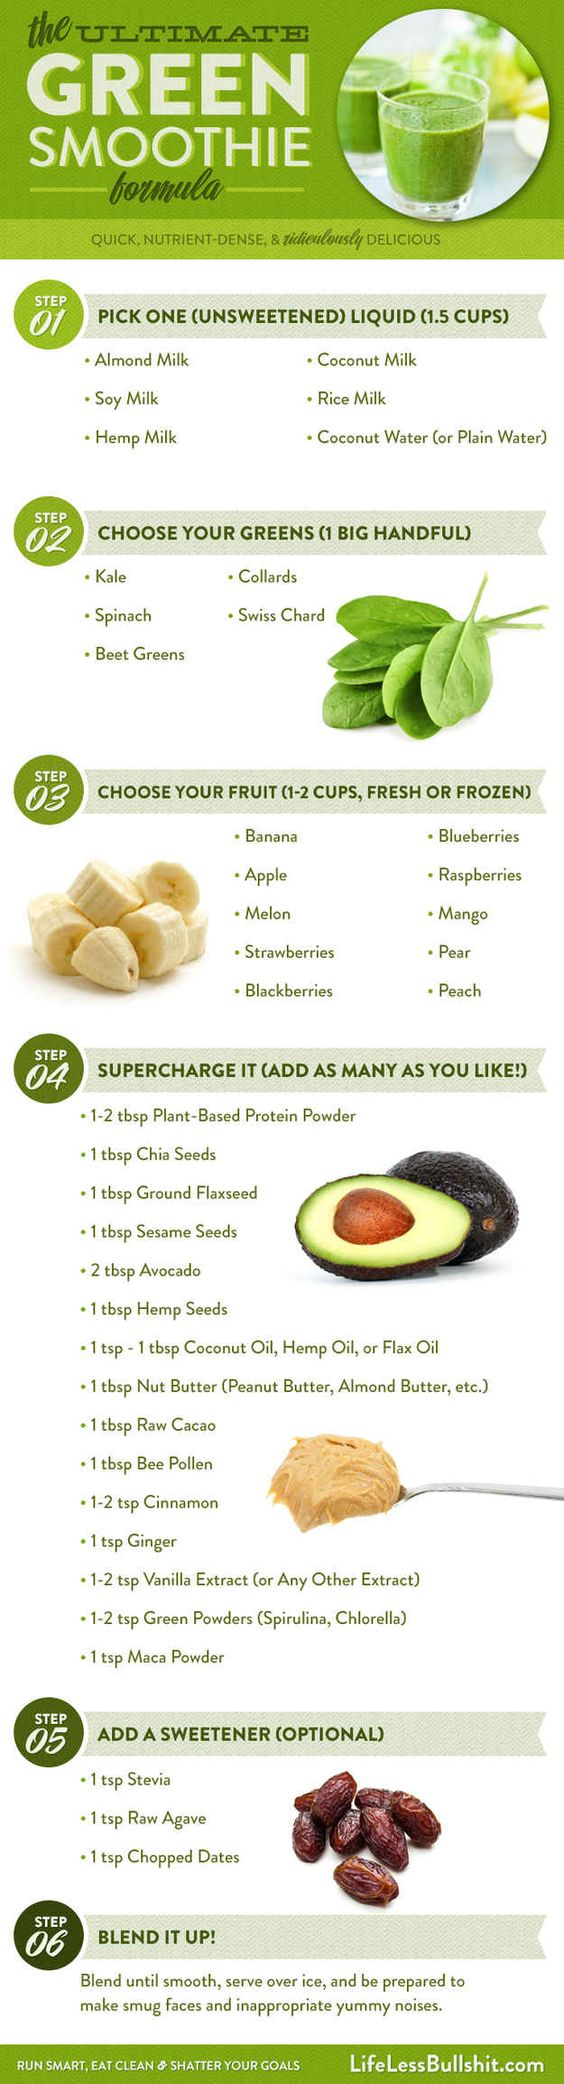 Image 10 8 - The All In One Guide To Making A Green Smoothie